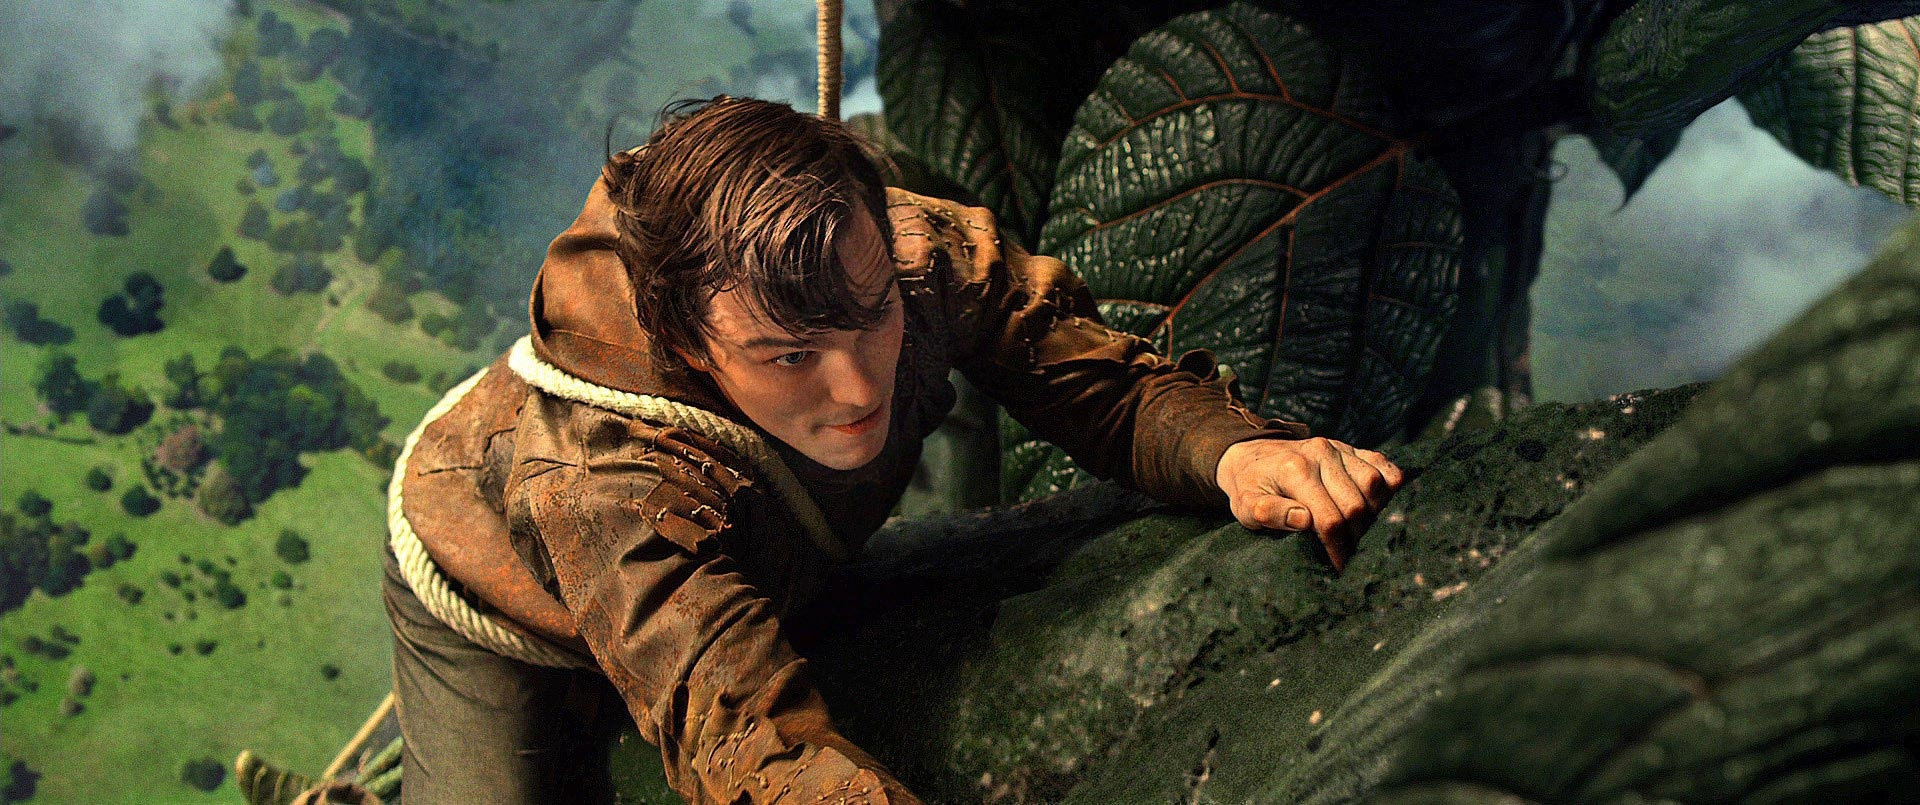 Review: JACK THE GIANT SLAYER